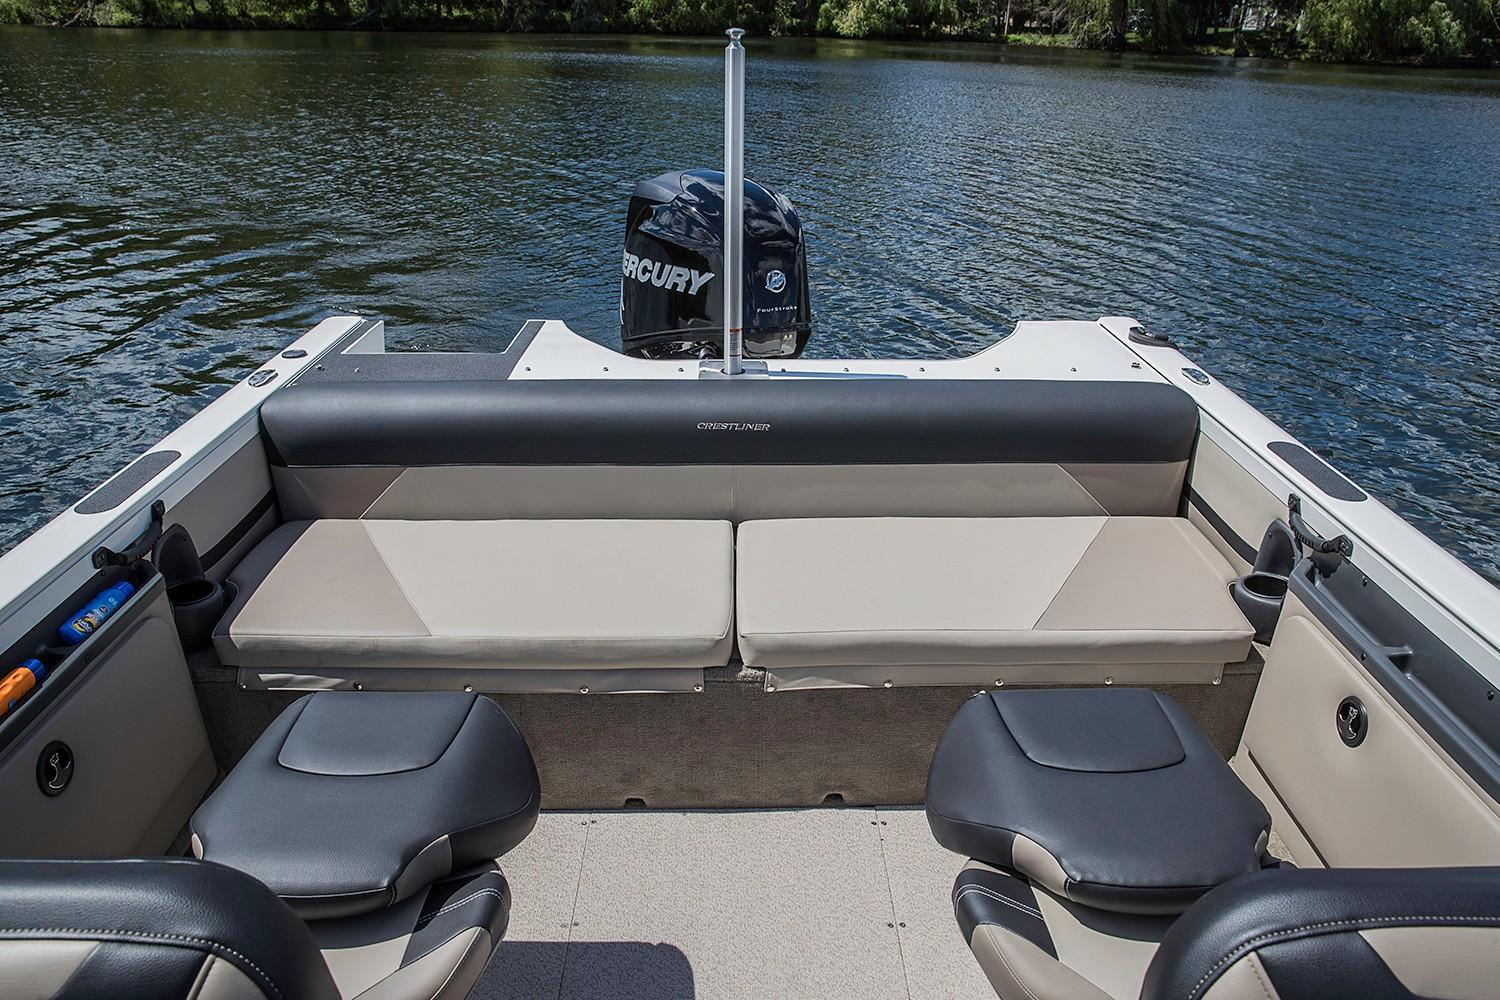 2019 Crestliner 1850 SportFish SST in Kaukauna, Wisconsin - Photo 13